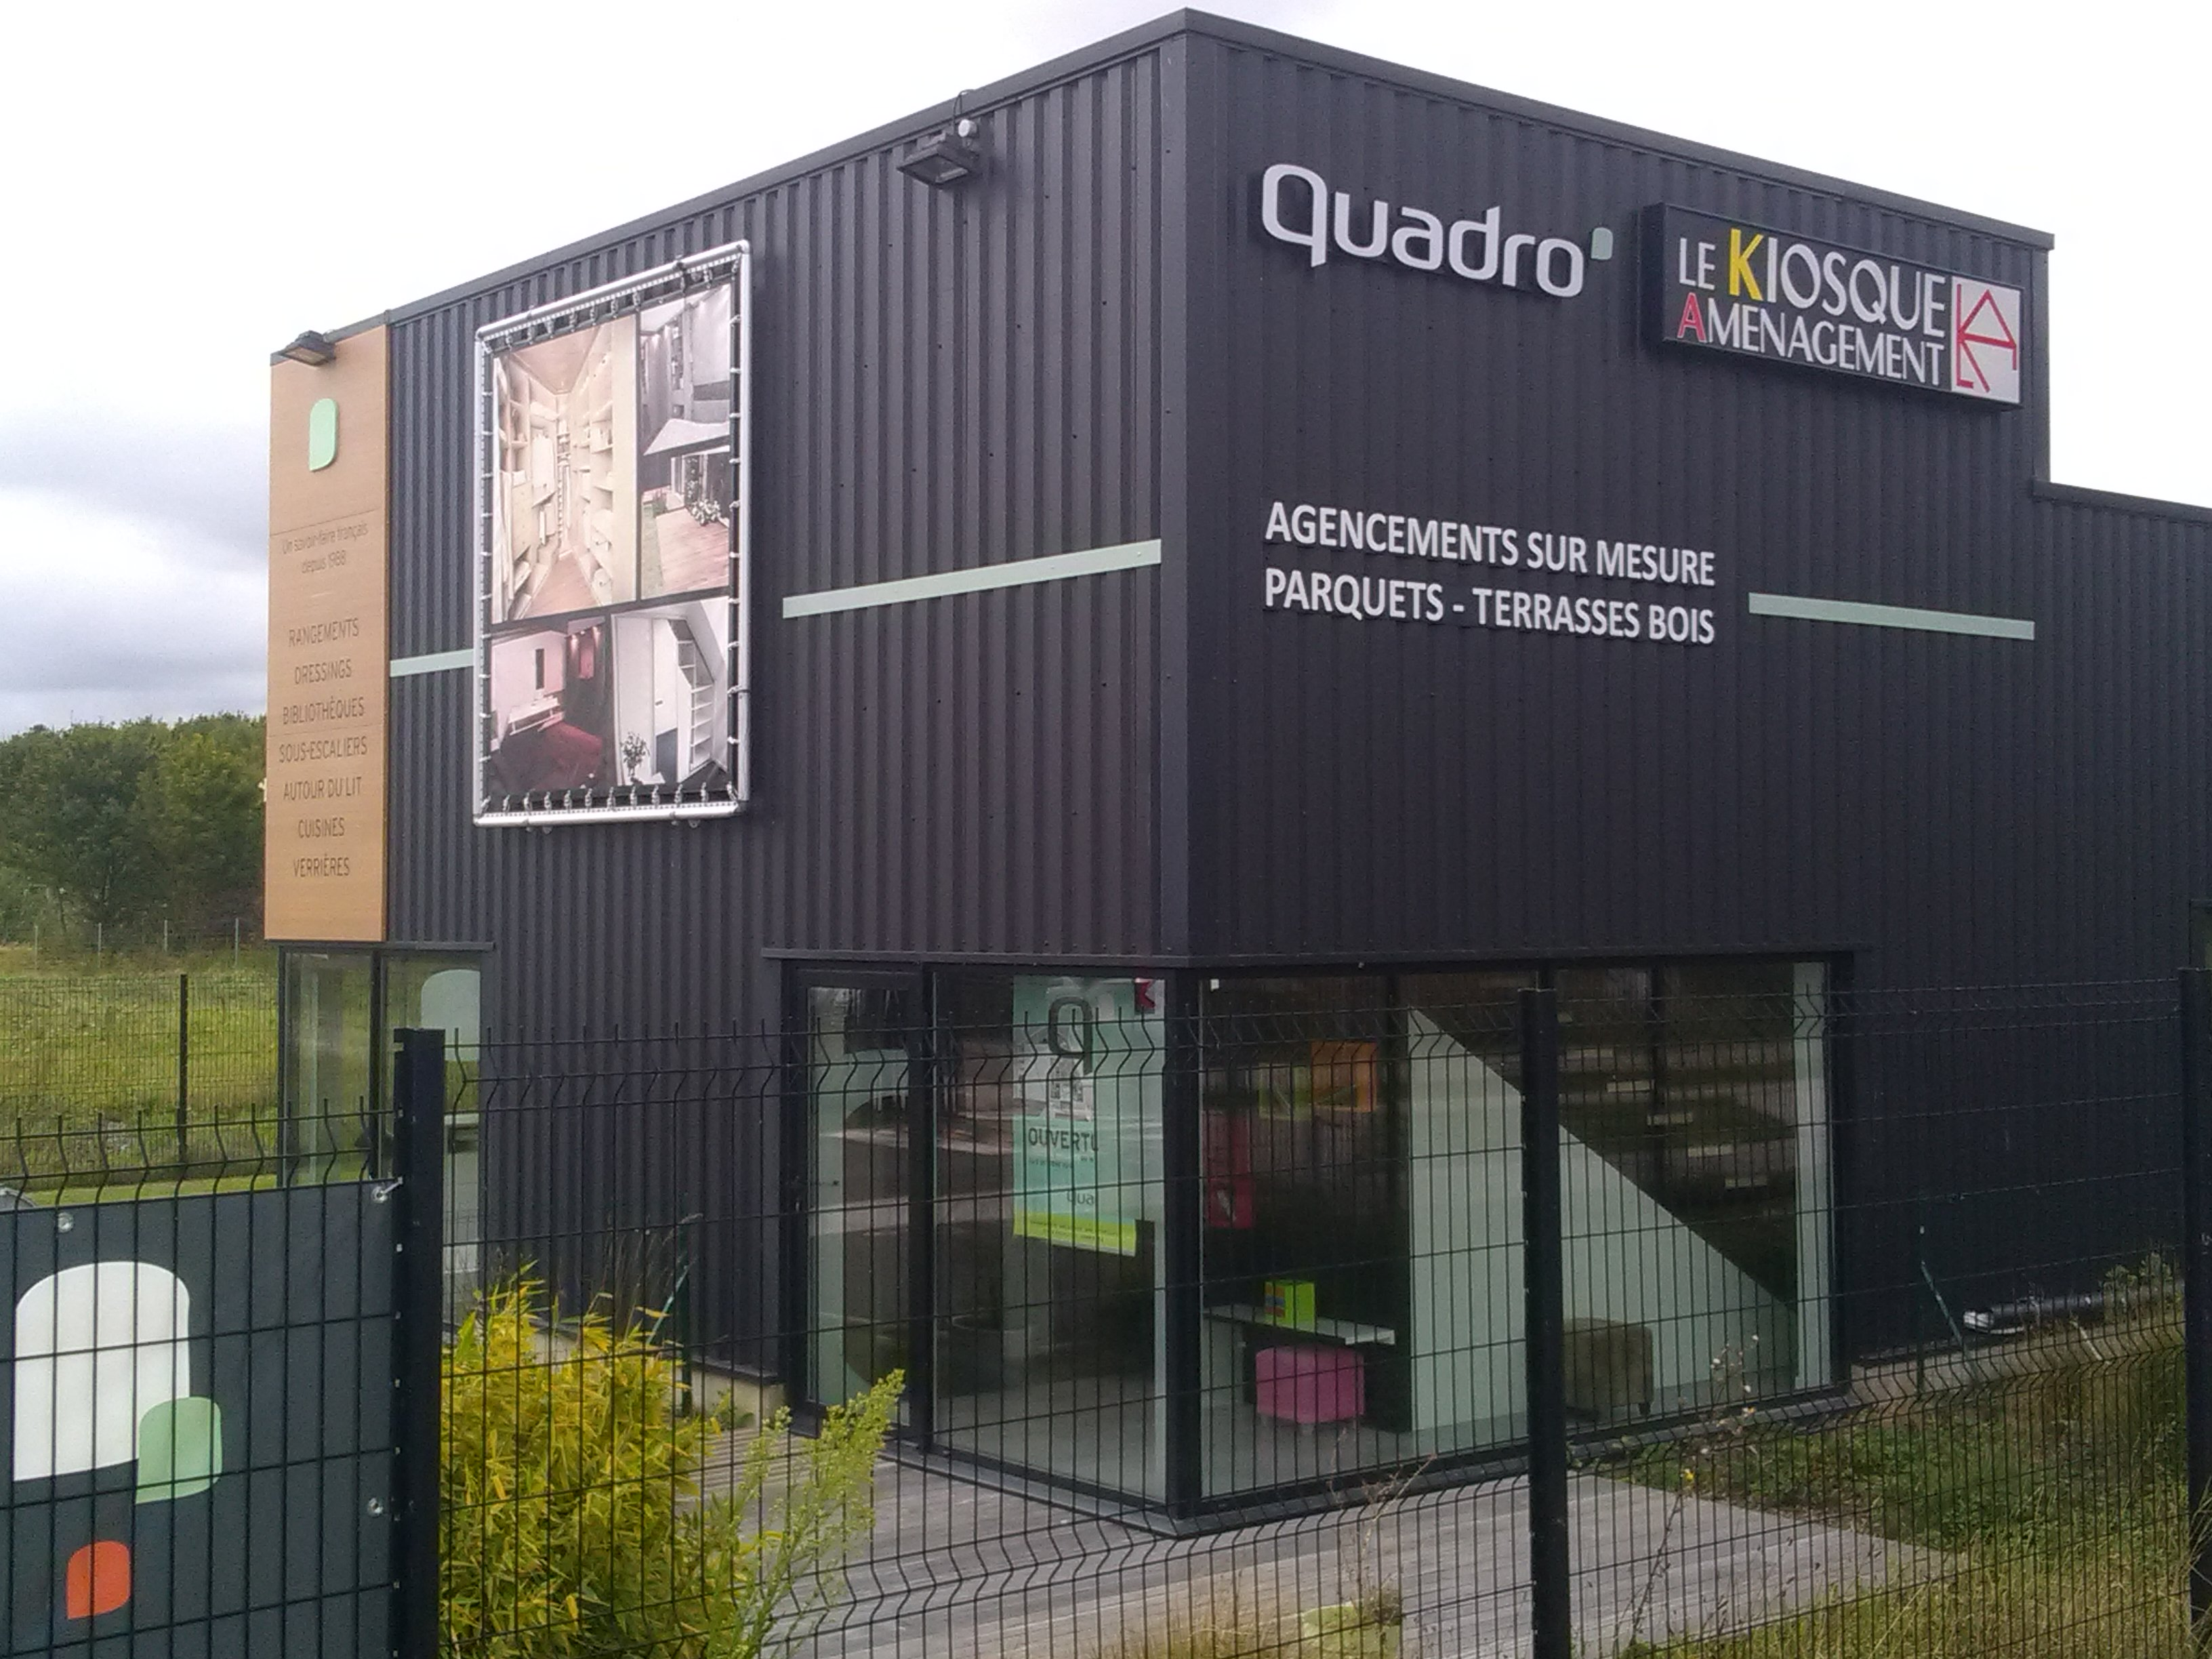 kiosque amenagement quadro cysoing